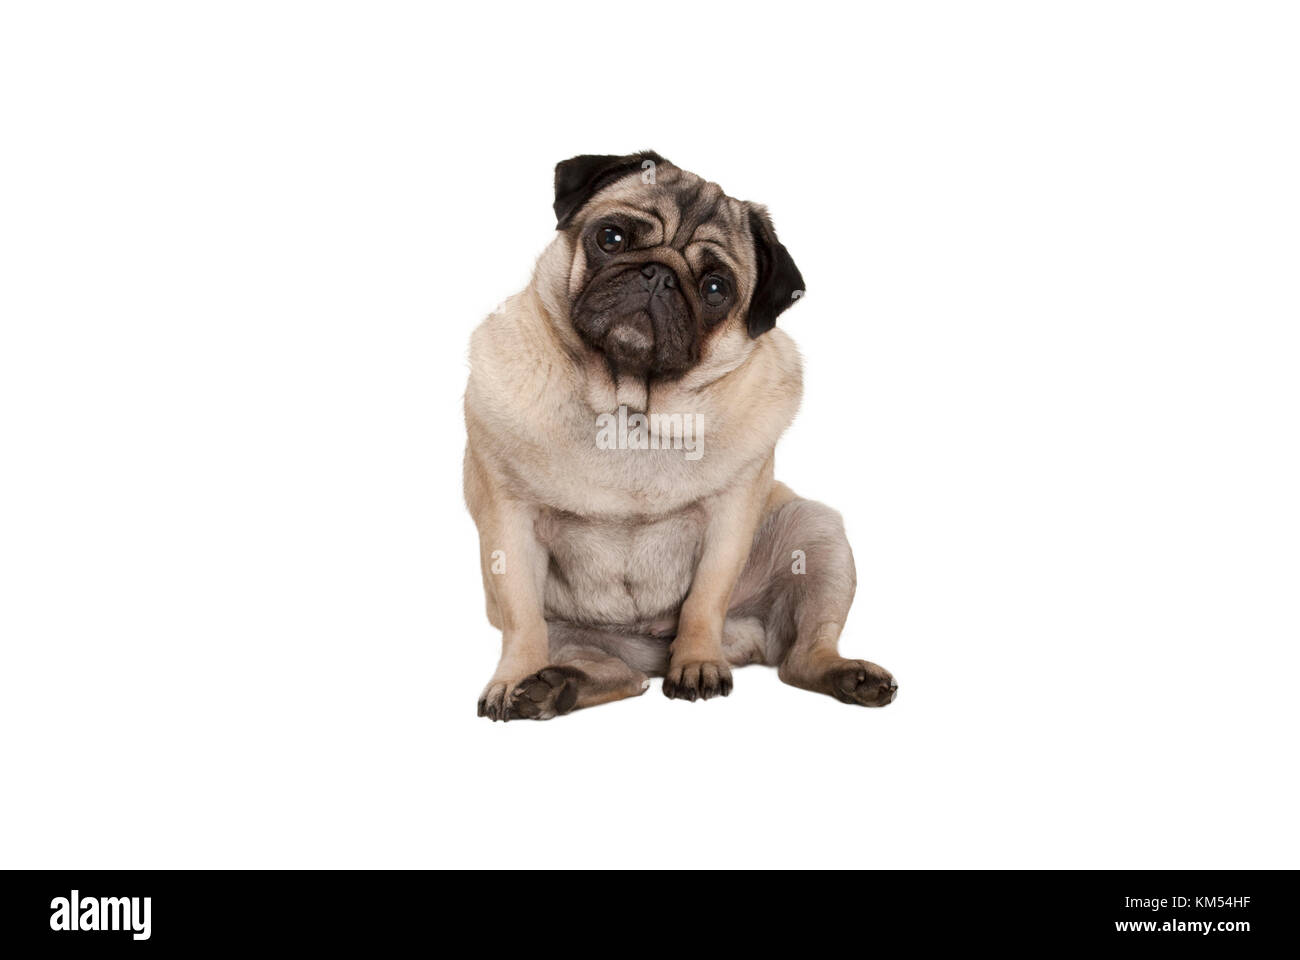 cute smart pug puppy dog with cheecky face, sitting down, isolated on white background Stock Photo